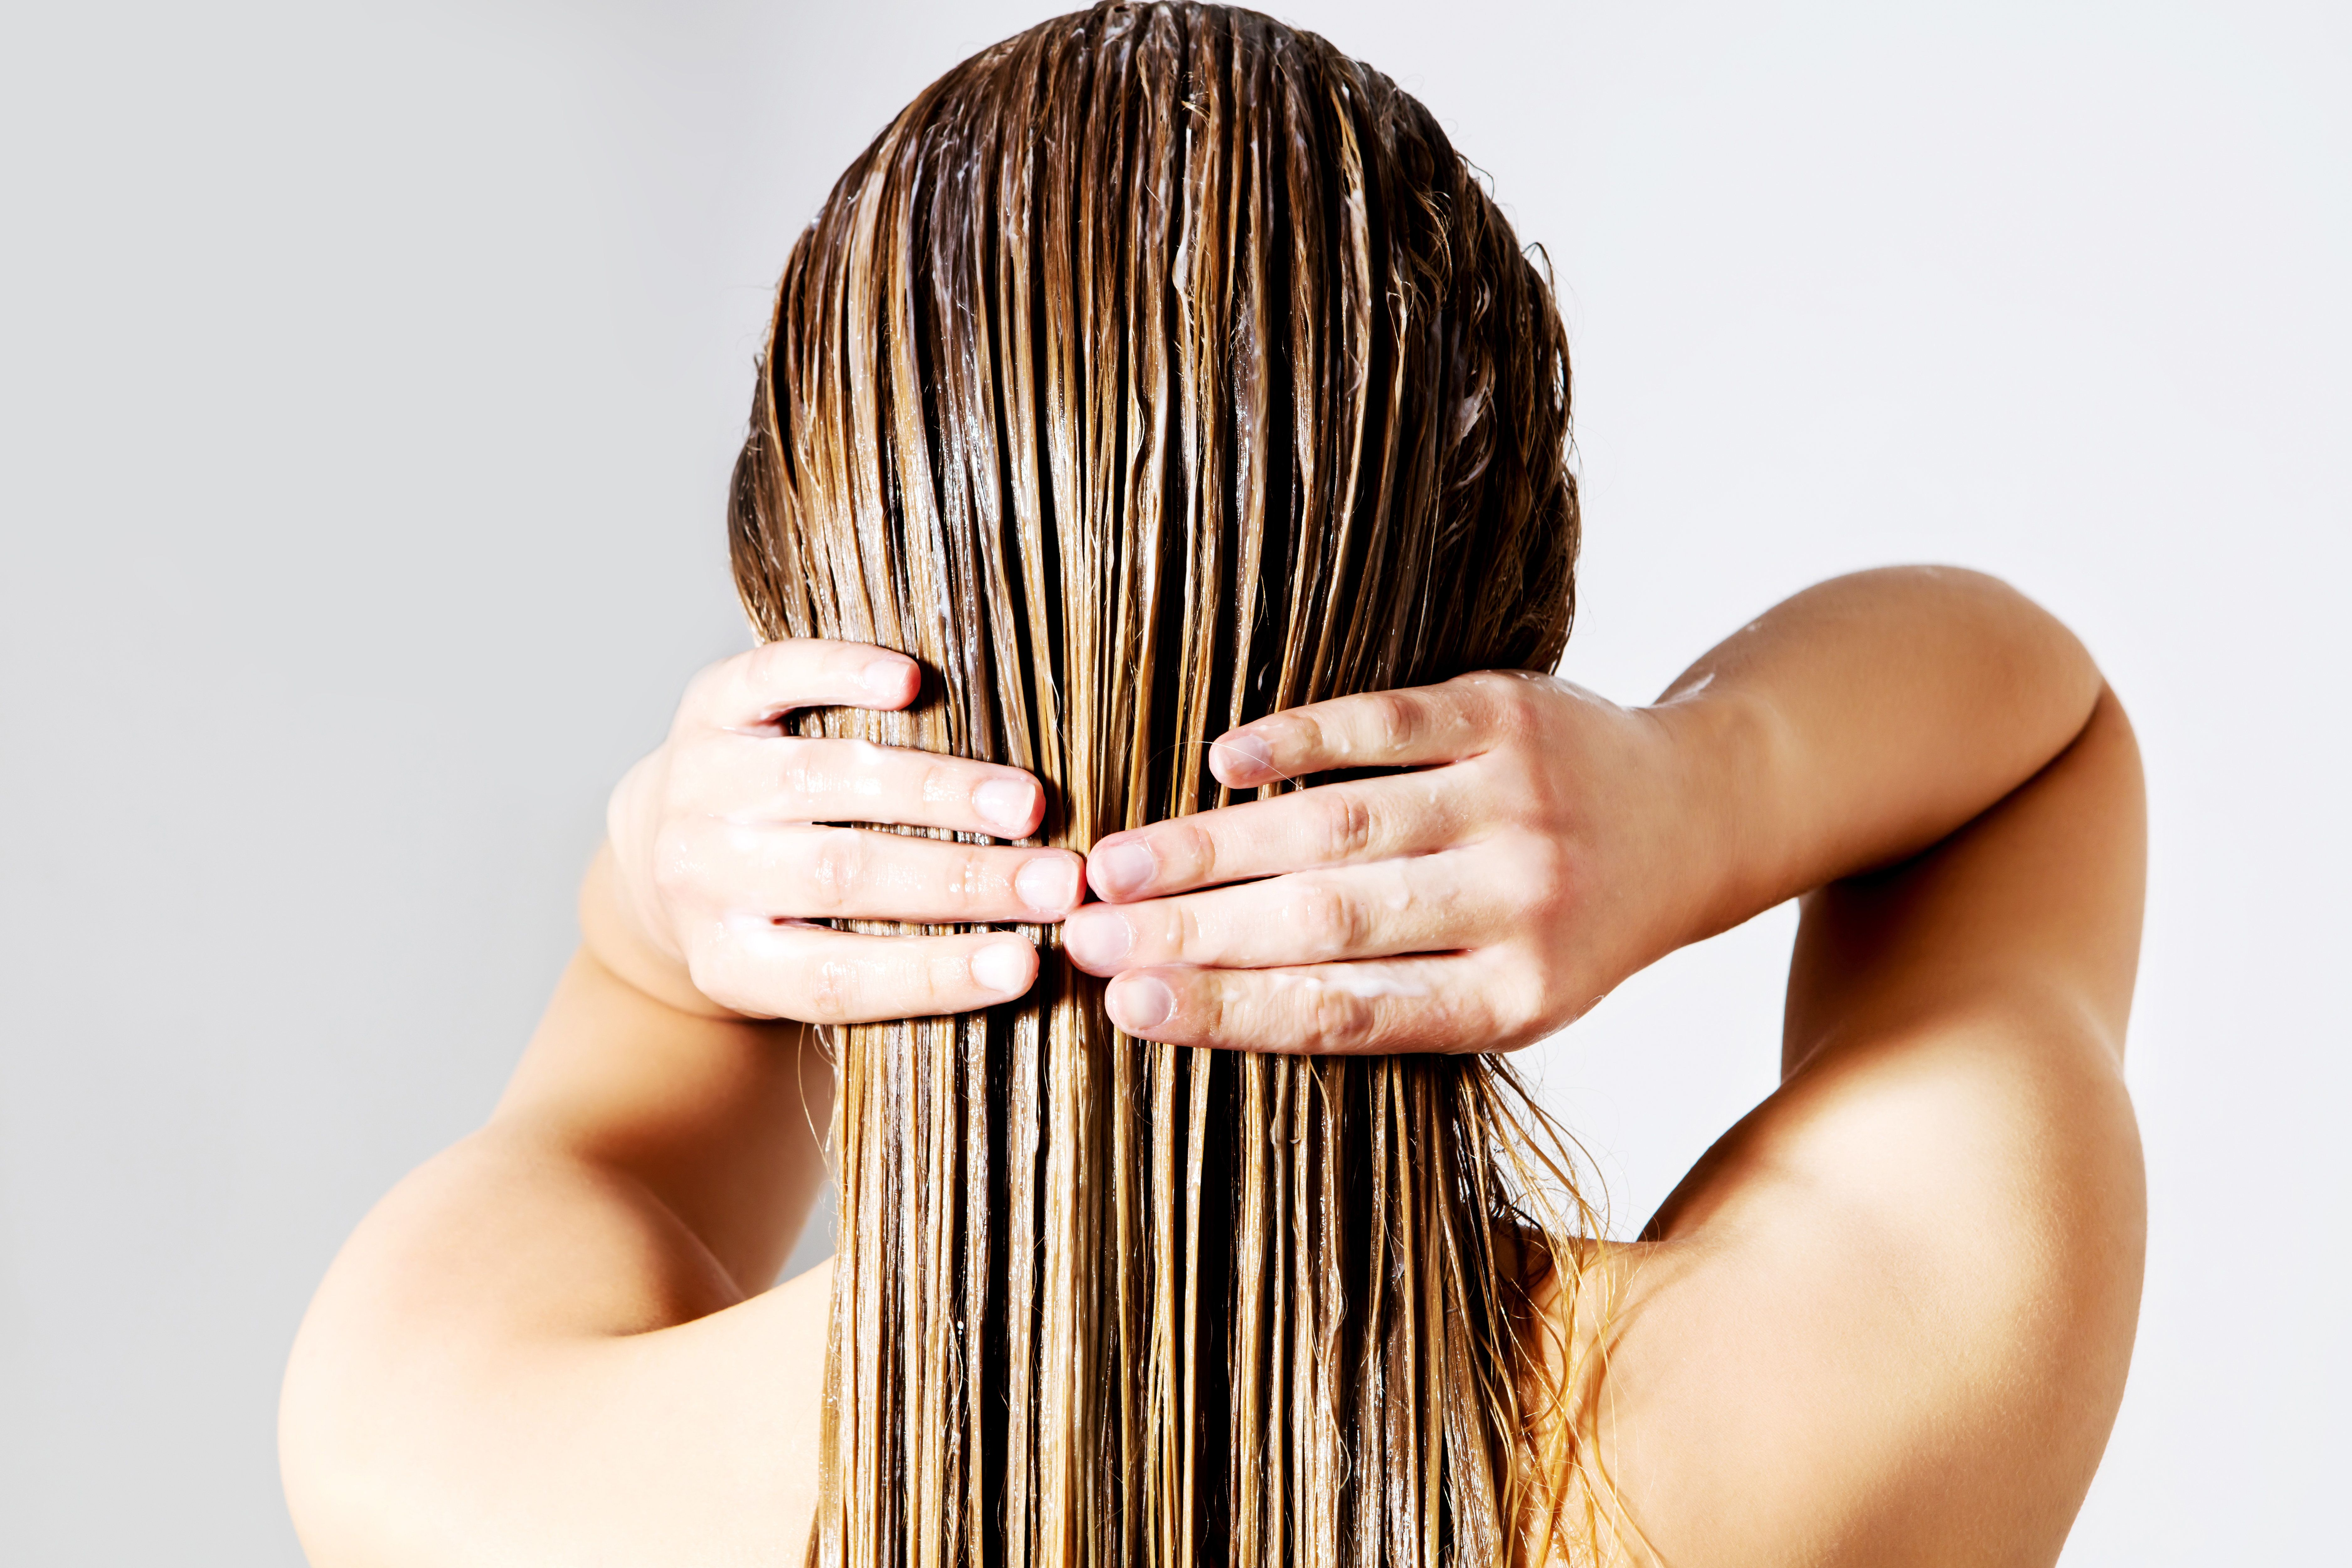 Do We Really Need To Use Hair Oil? Experts Weigh